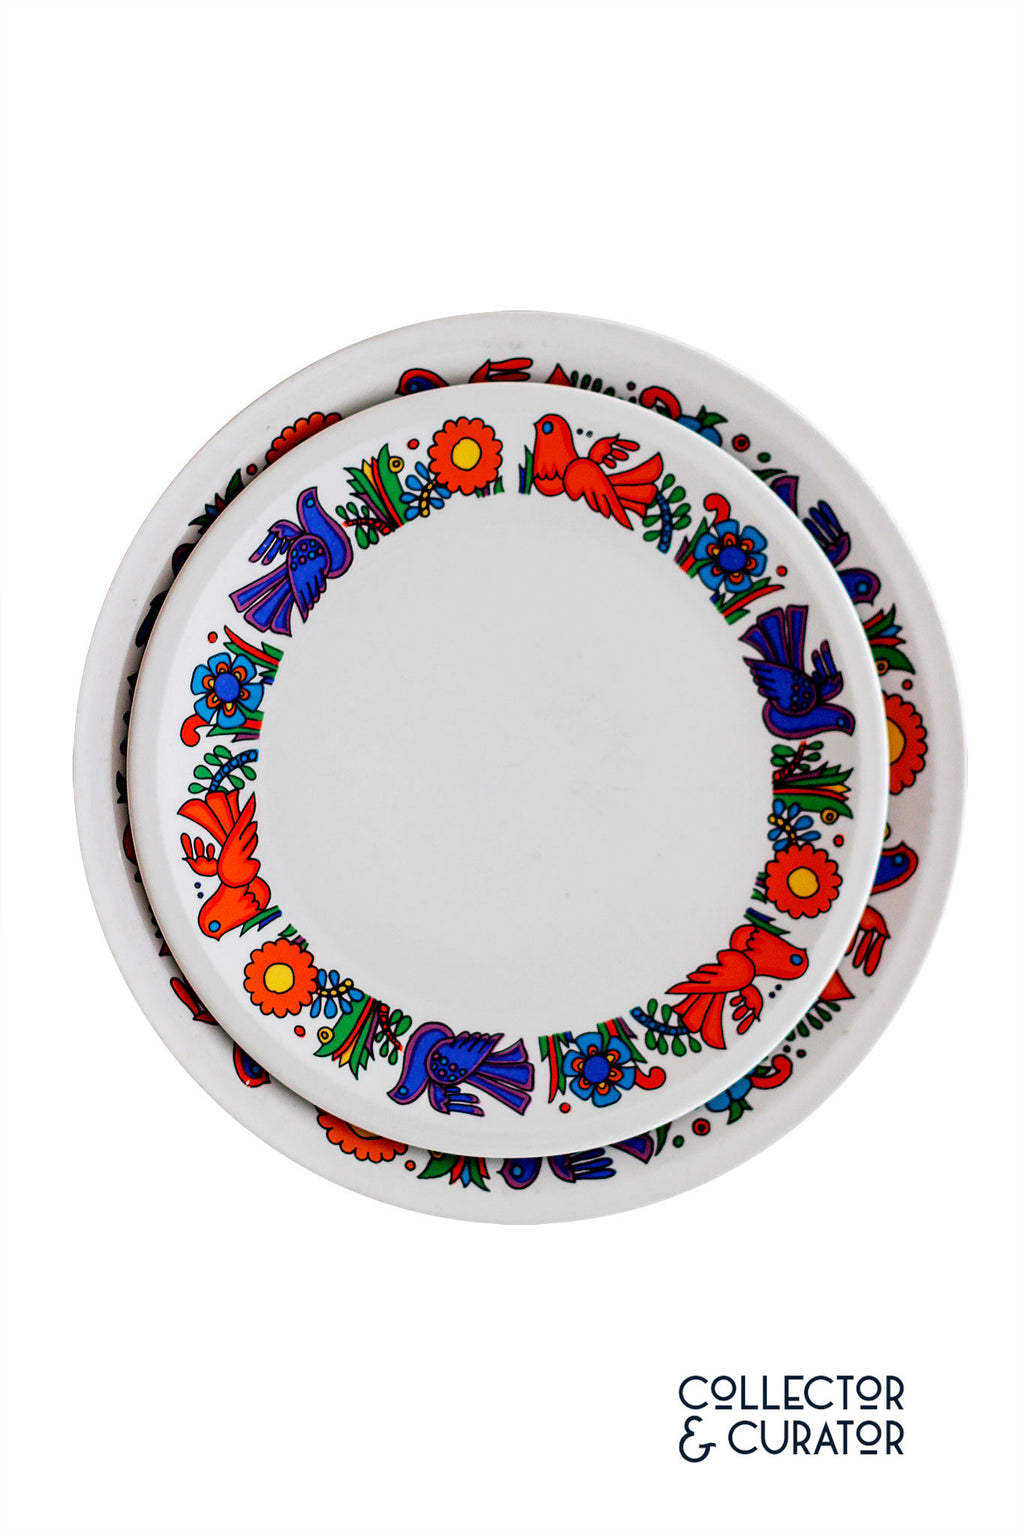 """Acapulco"" Dishes from Villeroy & Boch - Collector & Curator"